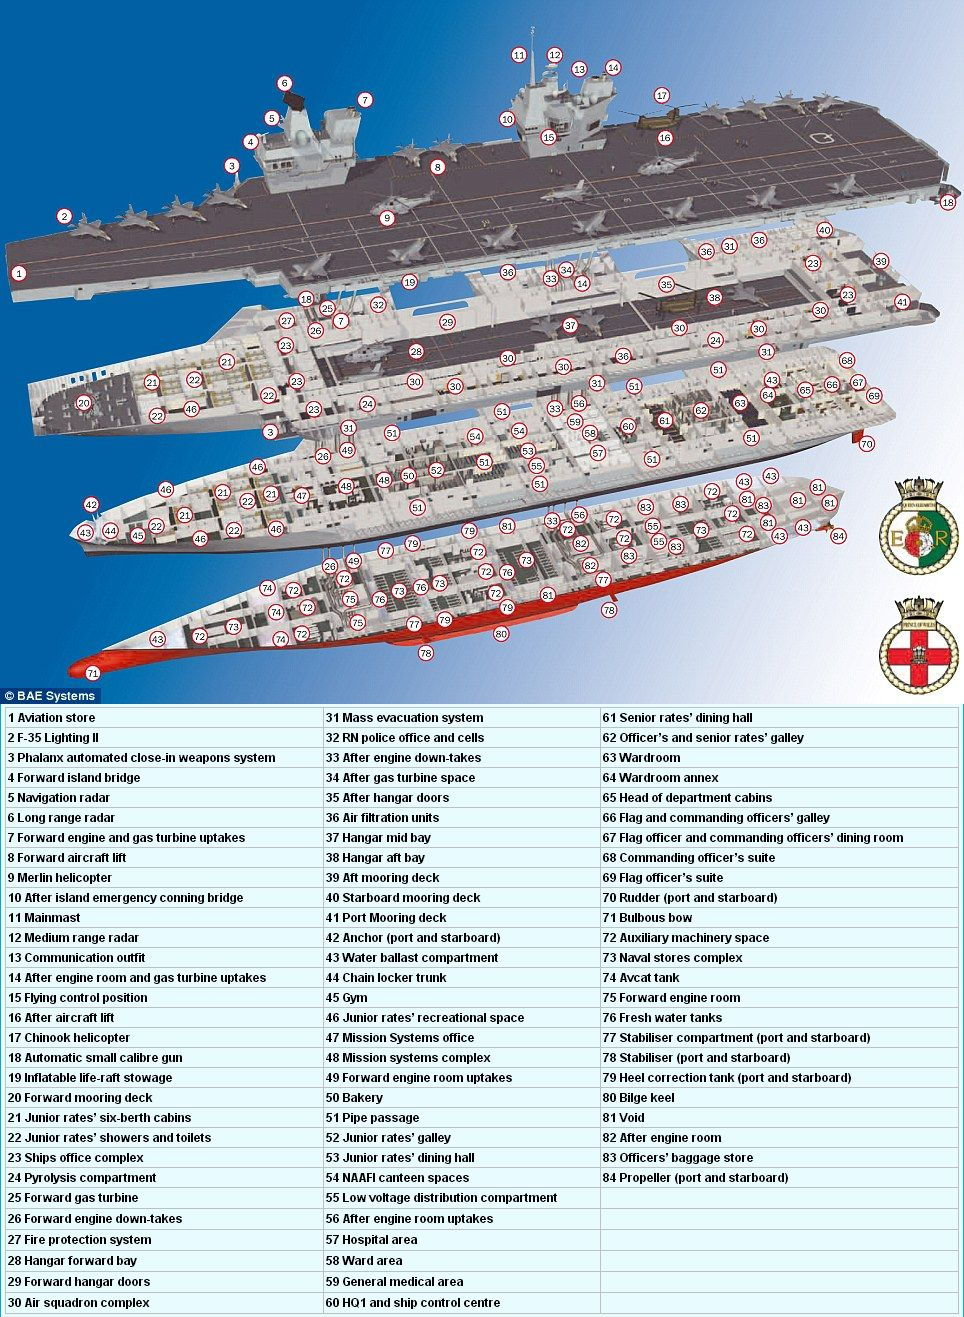 HMS Queen Elizabeth aircraft carrier UK